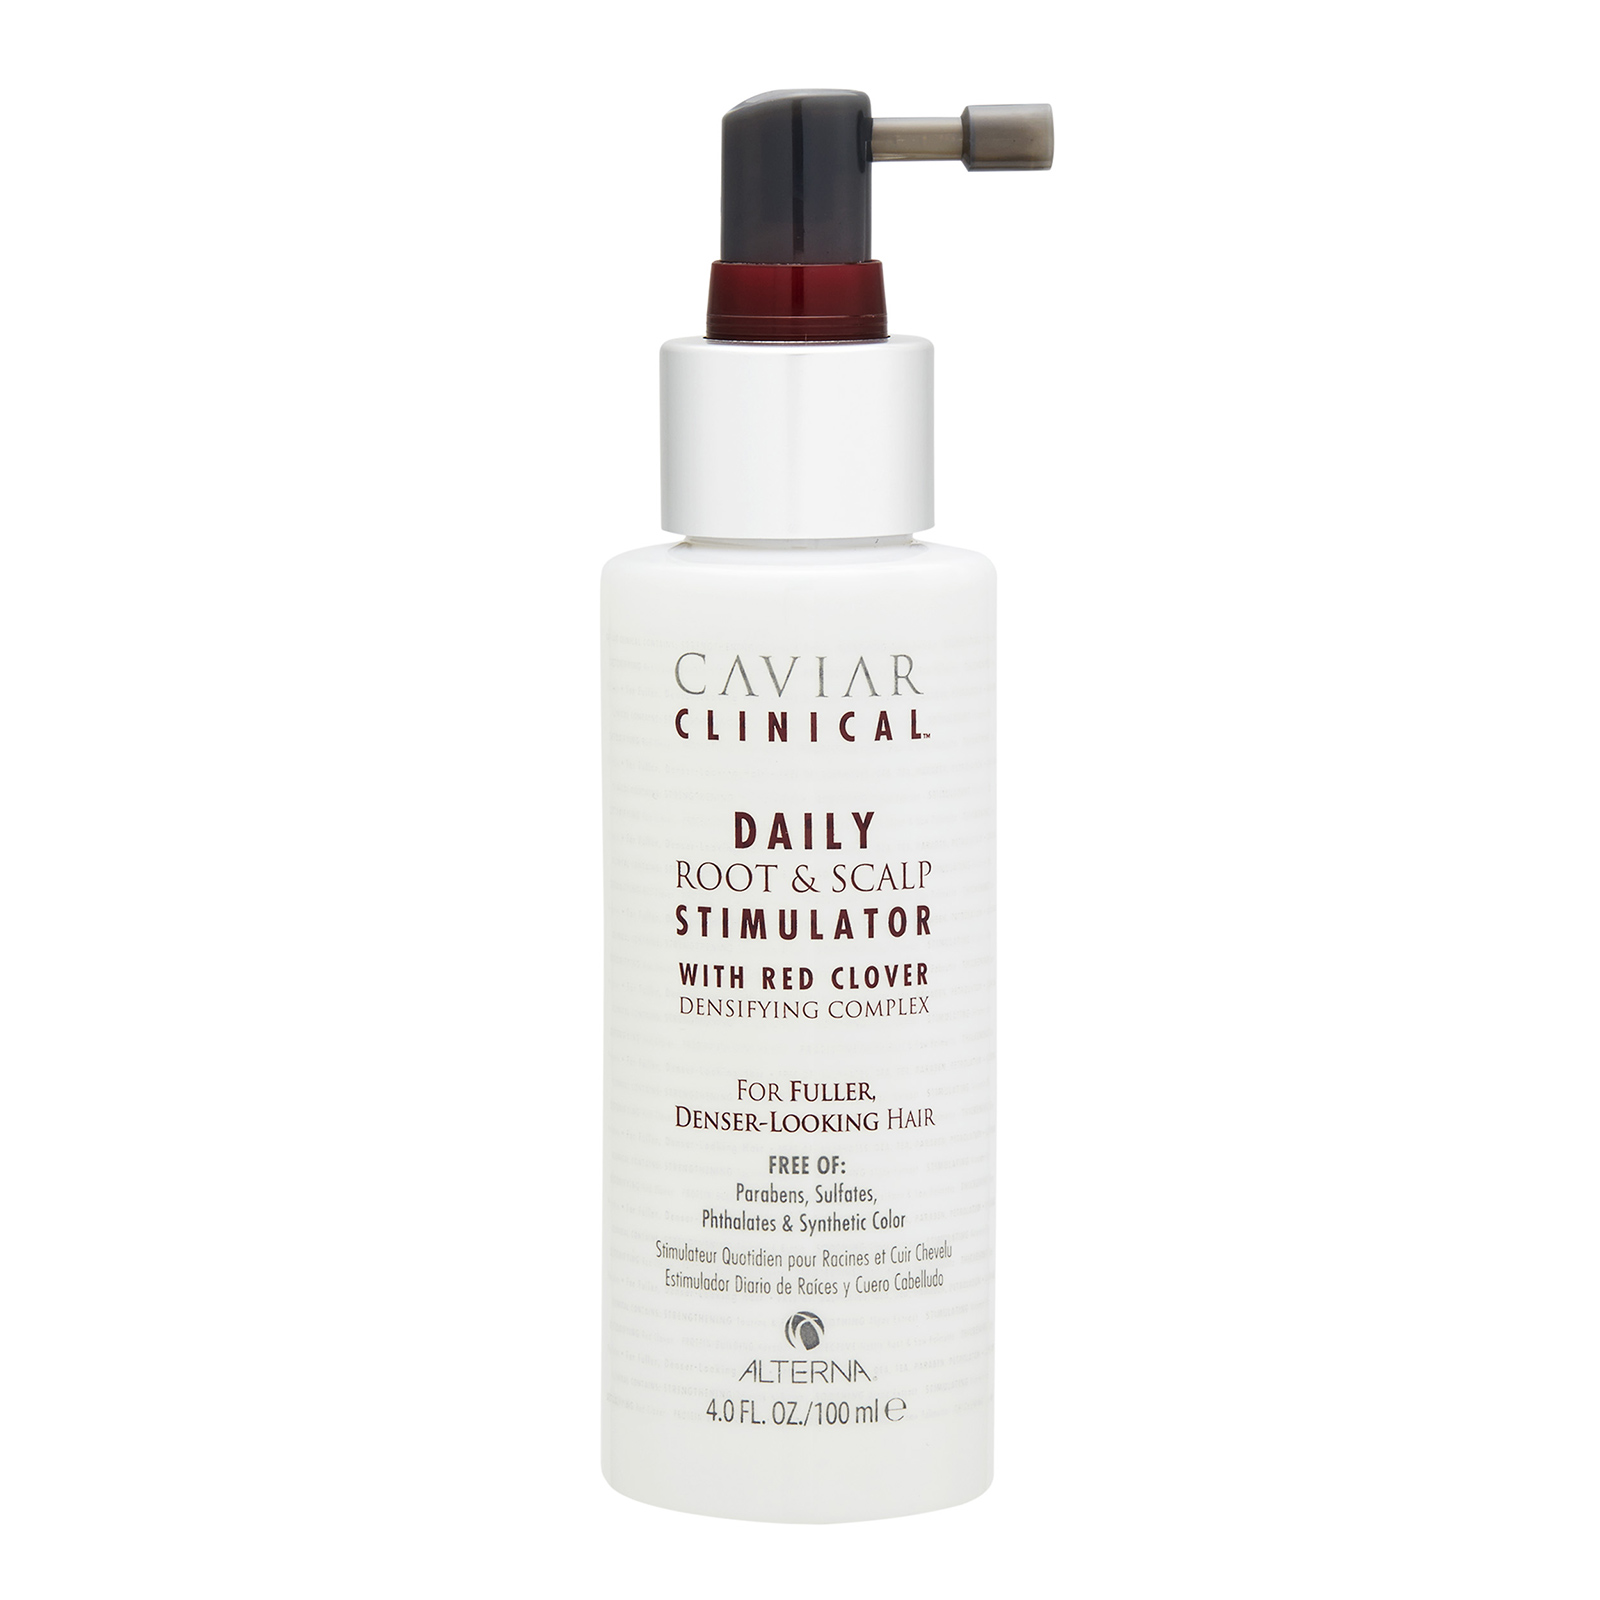 Alterna Haircare Caviar Clinical Daily Root & Scalp Stimulator 4oz, 100ml ATN0100008-000-00